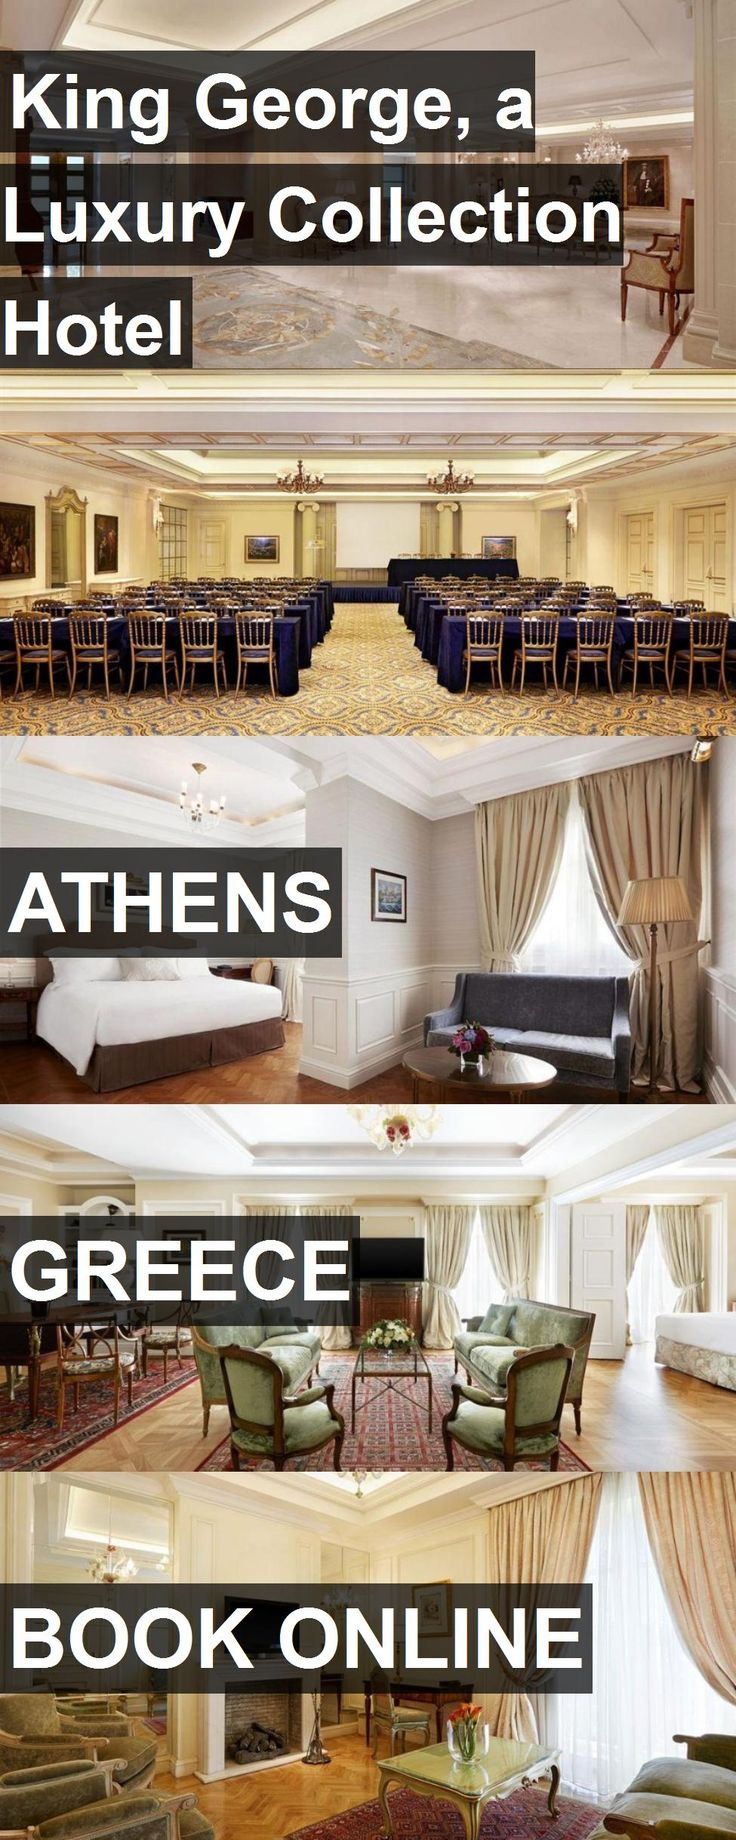 Hotel King George, a Luxury Collection Hotel in Athens, Greece. For more information, photos, reviews and best prices please follow the link. #Greece #Athens #KingGeorge,aLuxuryCollectionHotel #hotel #travel #vacation